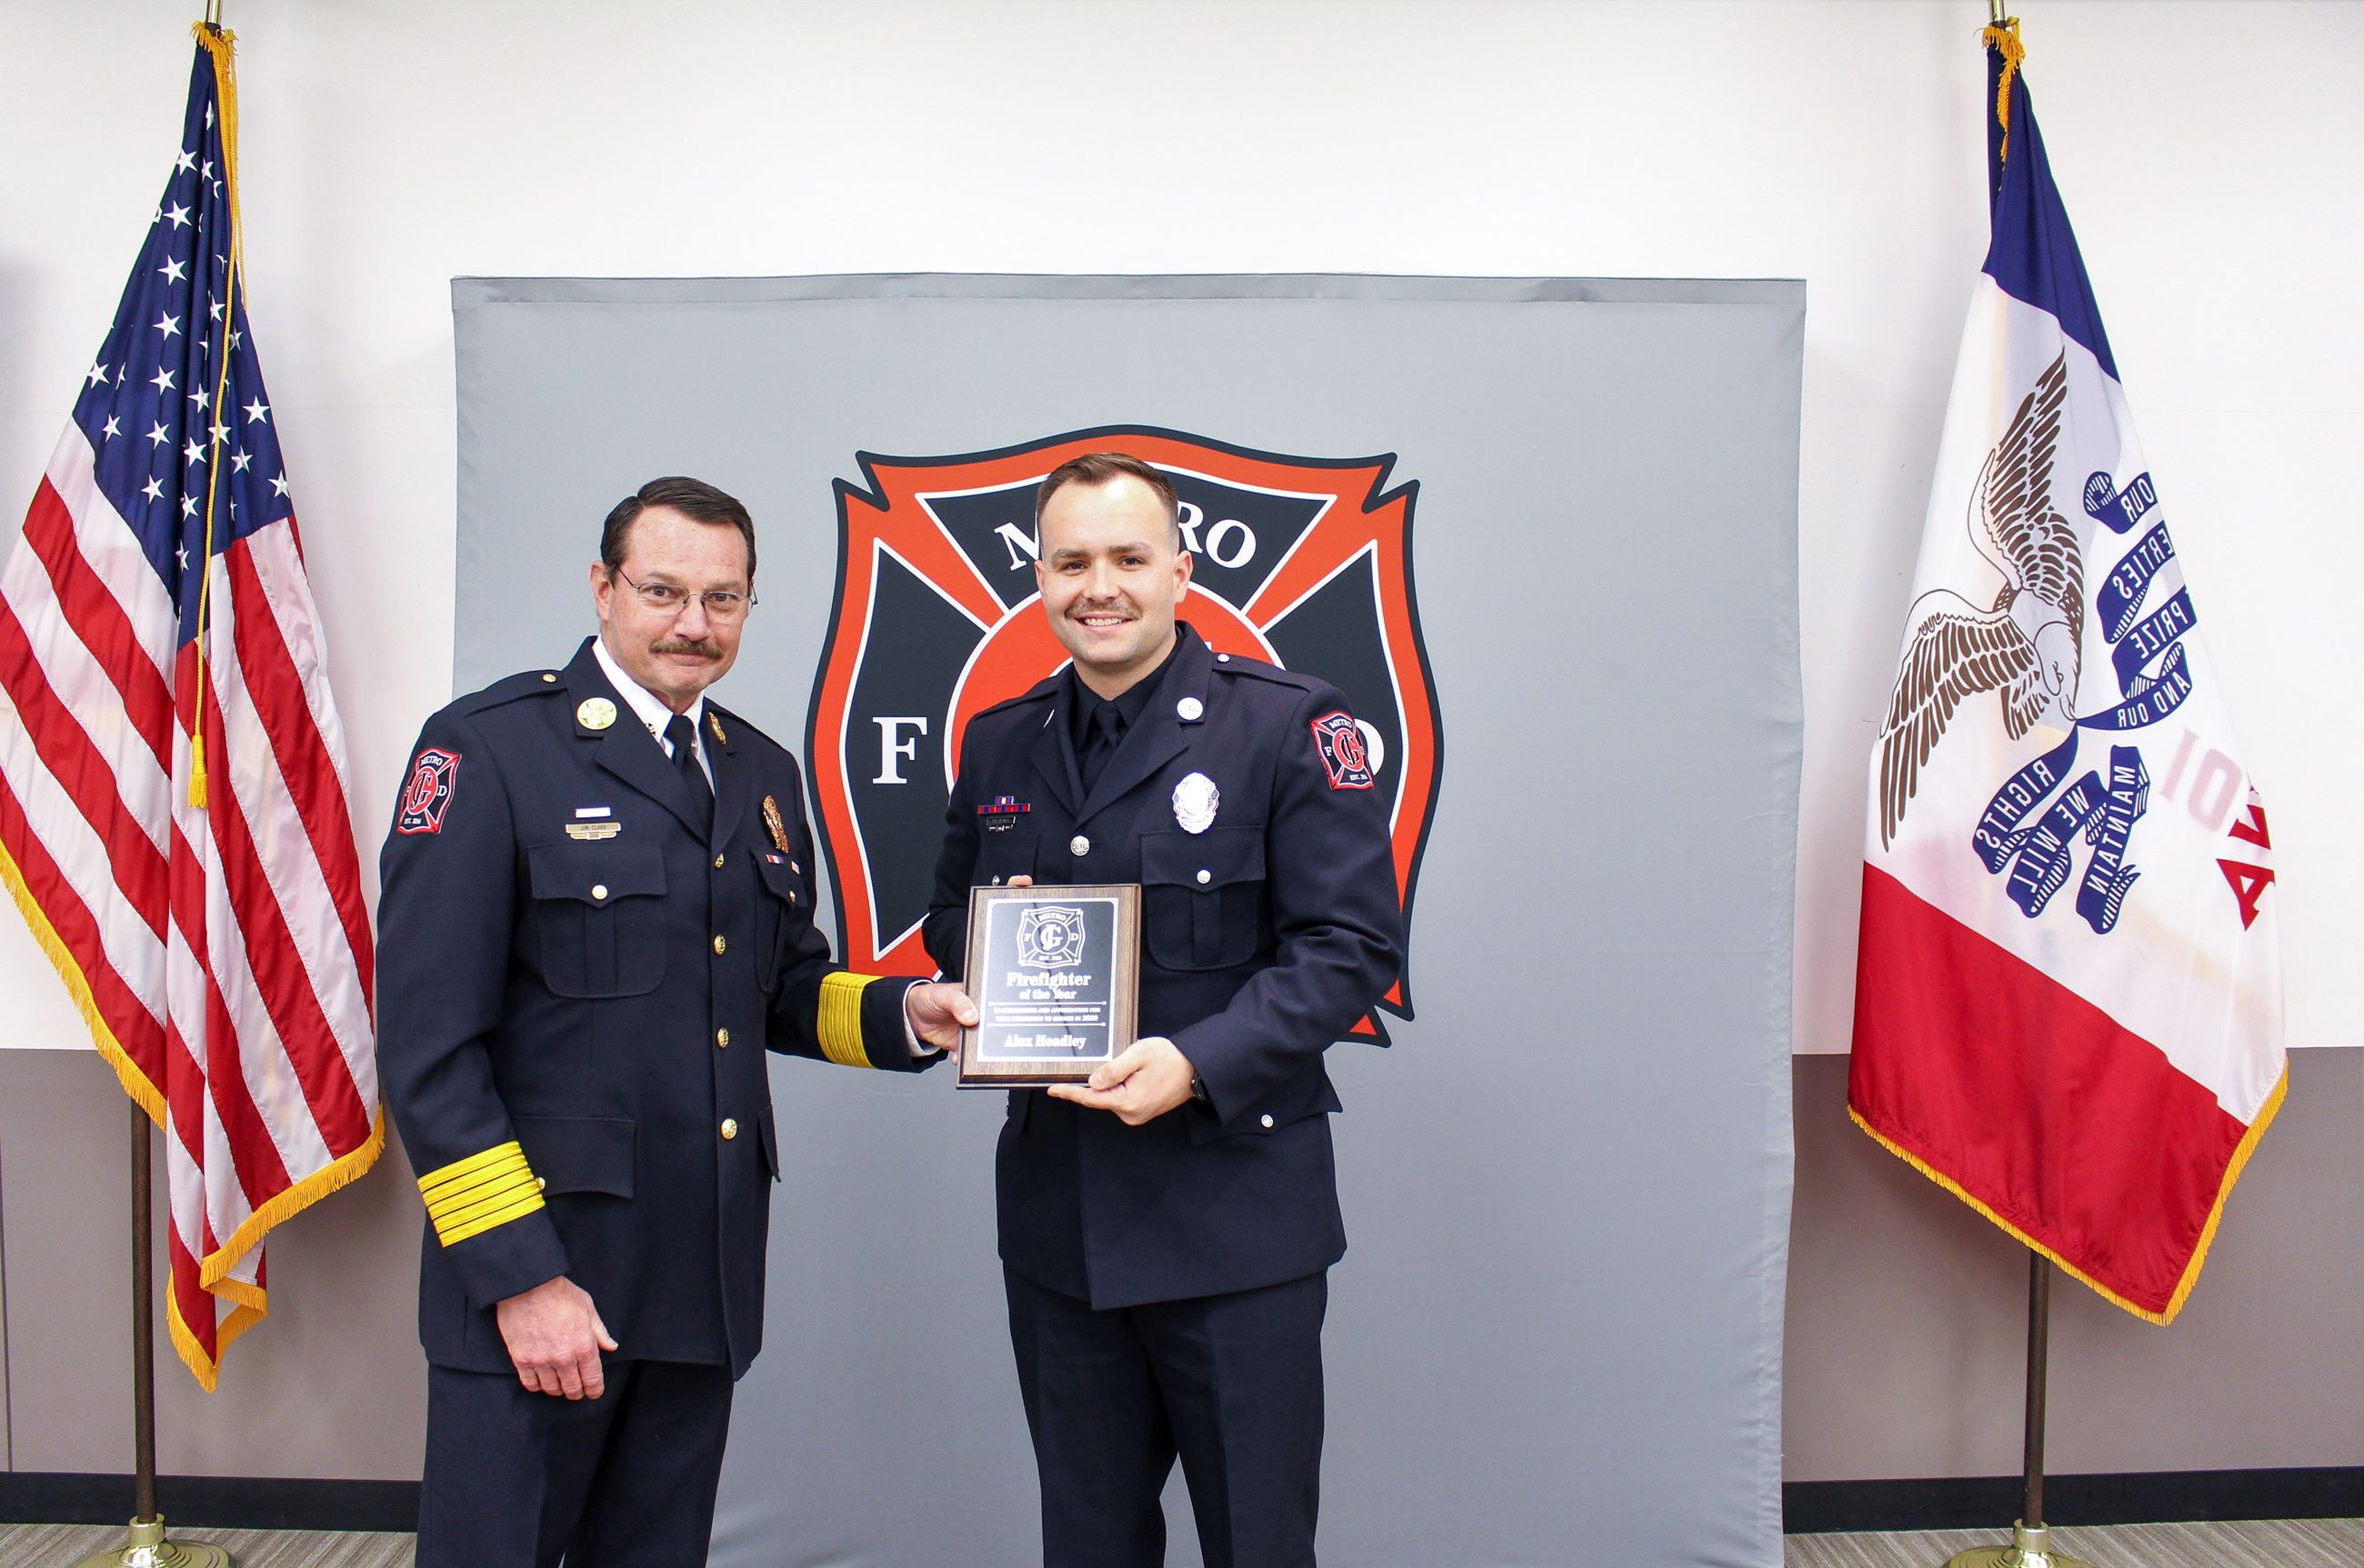 8. Firefighter of the Year_Alex Headley